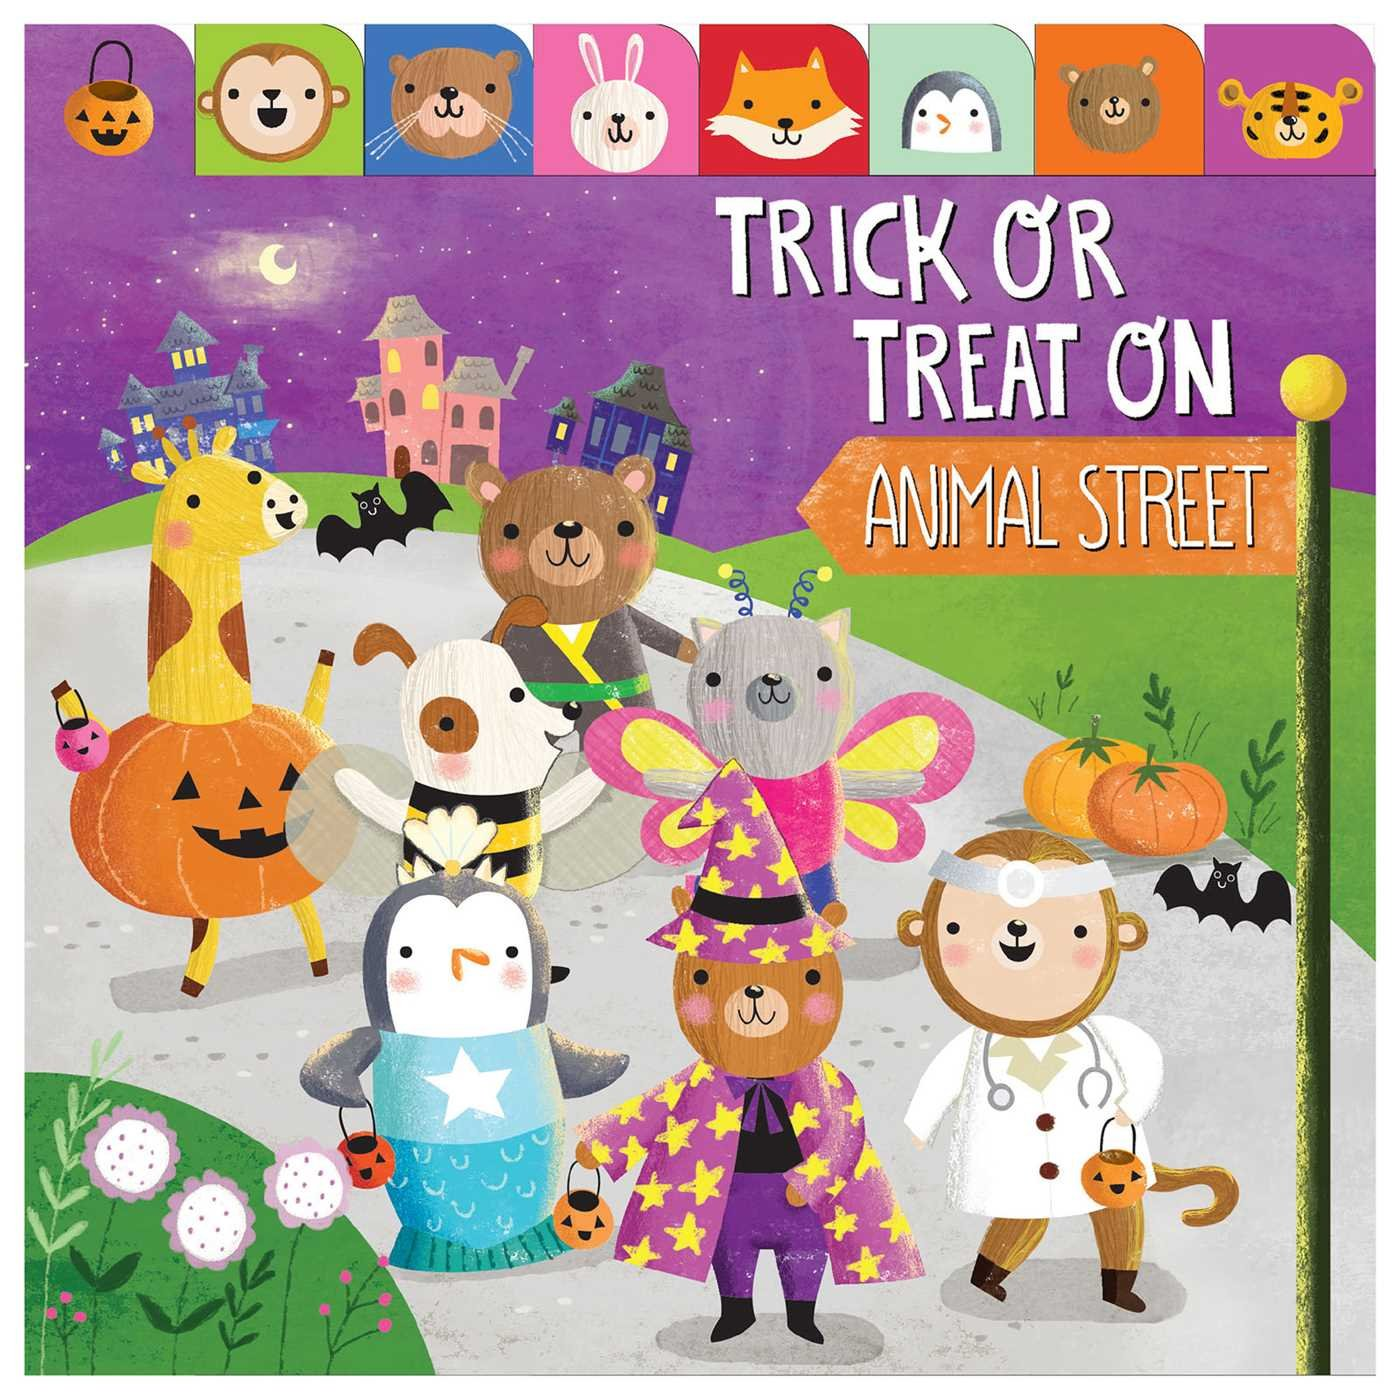 Trick or treat on animal street book cover - Coco Gigi Design.jpg